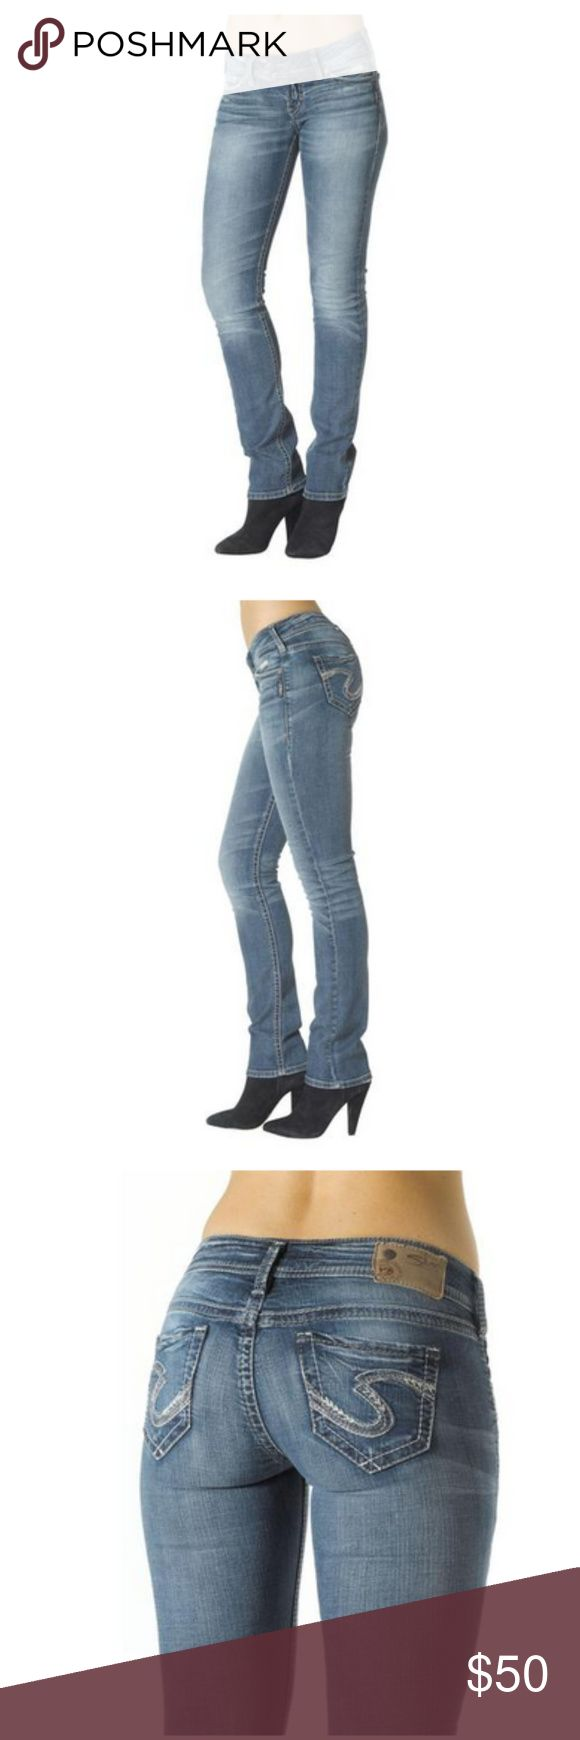 NWOT Silver Jeans Women's Tuesday Low Boot Cut Brand new without tags! Designed in our Super Stretch fabric for an ultra soft and easy-going feel, this low rise Tuesday boot cut in a medium wash has attention grabbing back flap pockets. Tuesday is crafted to flatter a straight build; meaning the denim is cut to complement straight hips and a rectangular silhouette.      Straight Fit     Slim Hip & Thigh     Low Rise     98% Cotton, 2% Elastane Silver Jeans Jeans Boot Cut